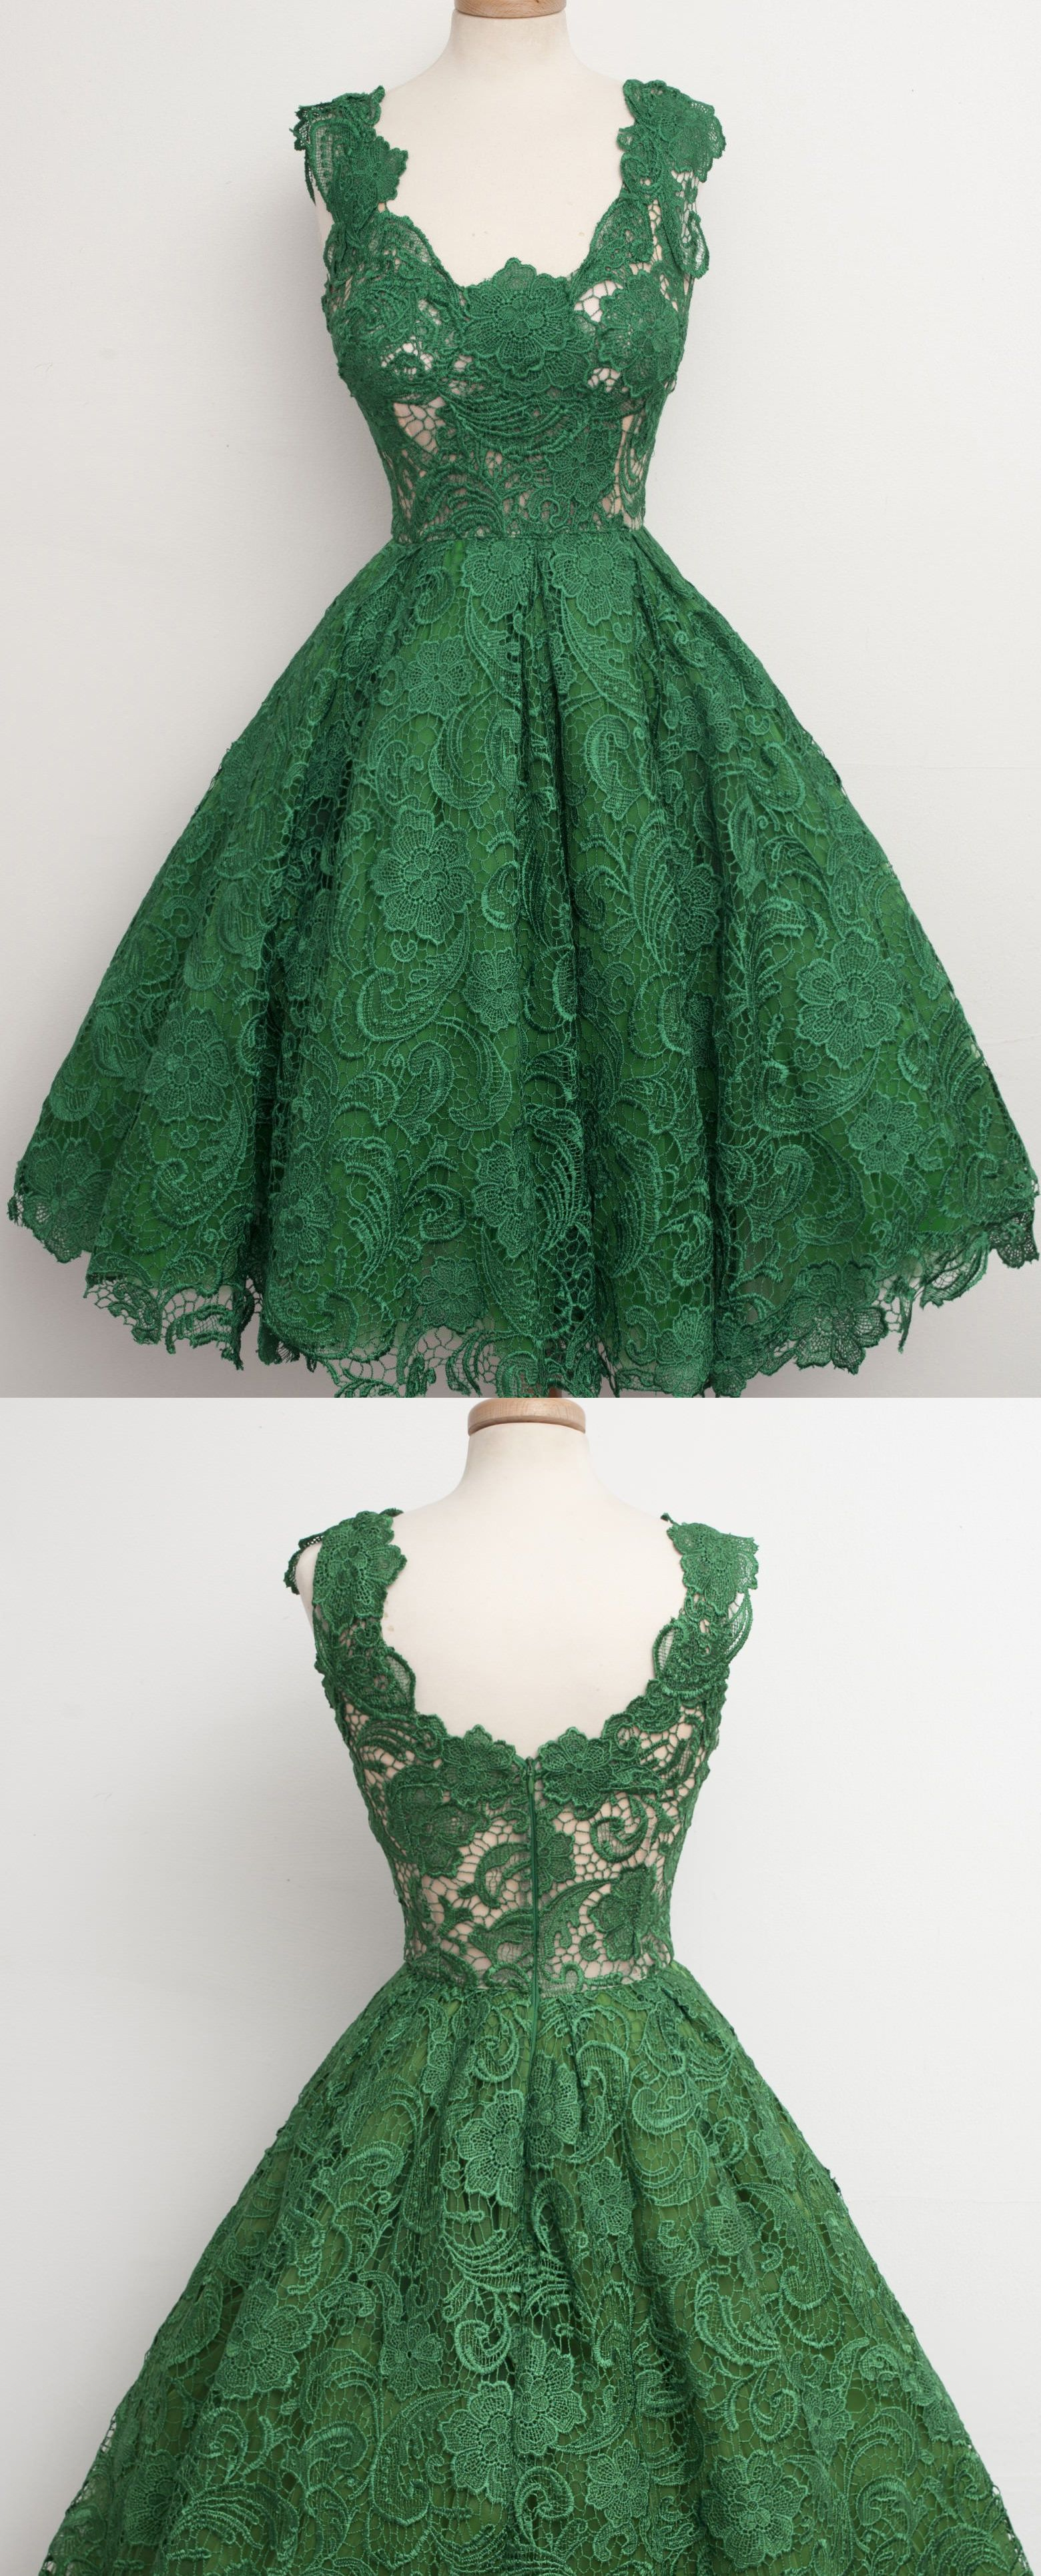 Customized green alineprincess party prom dresses outstanding